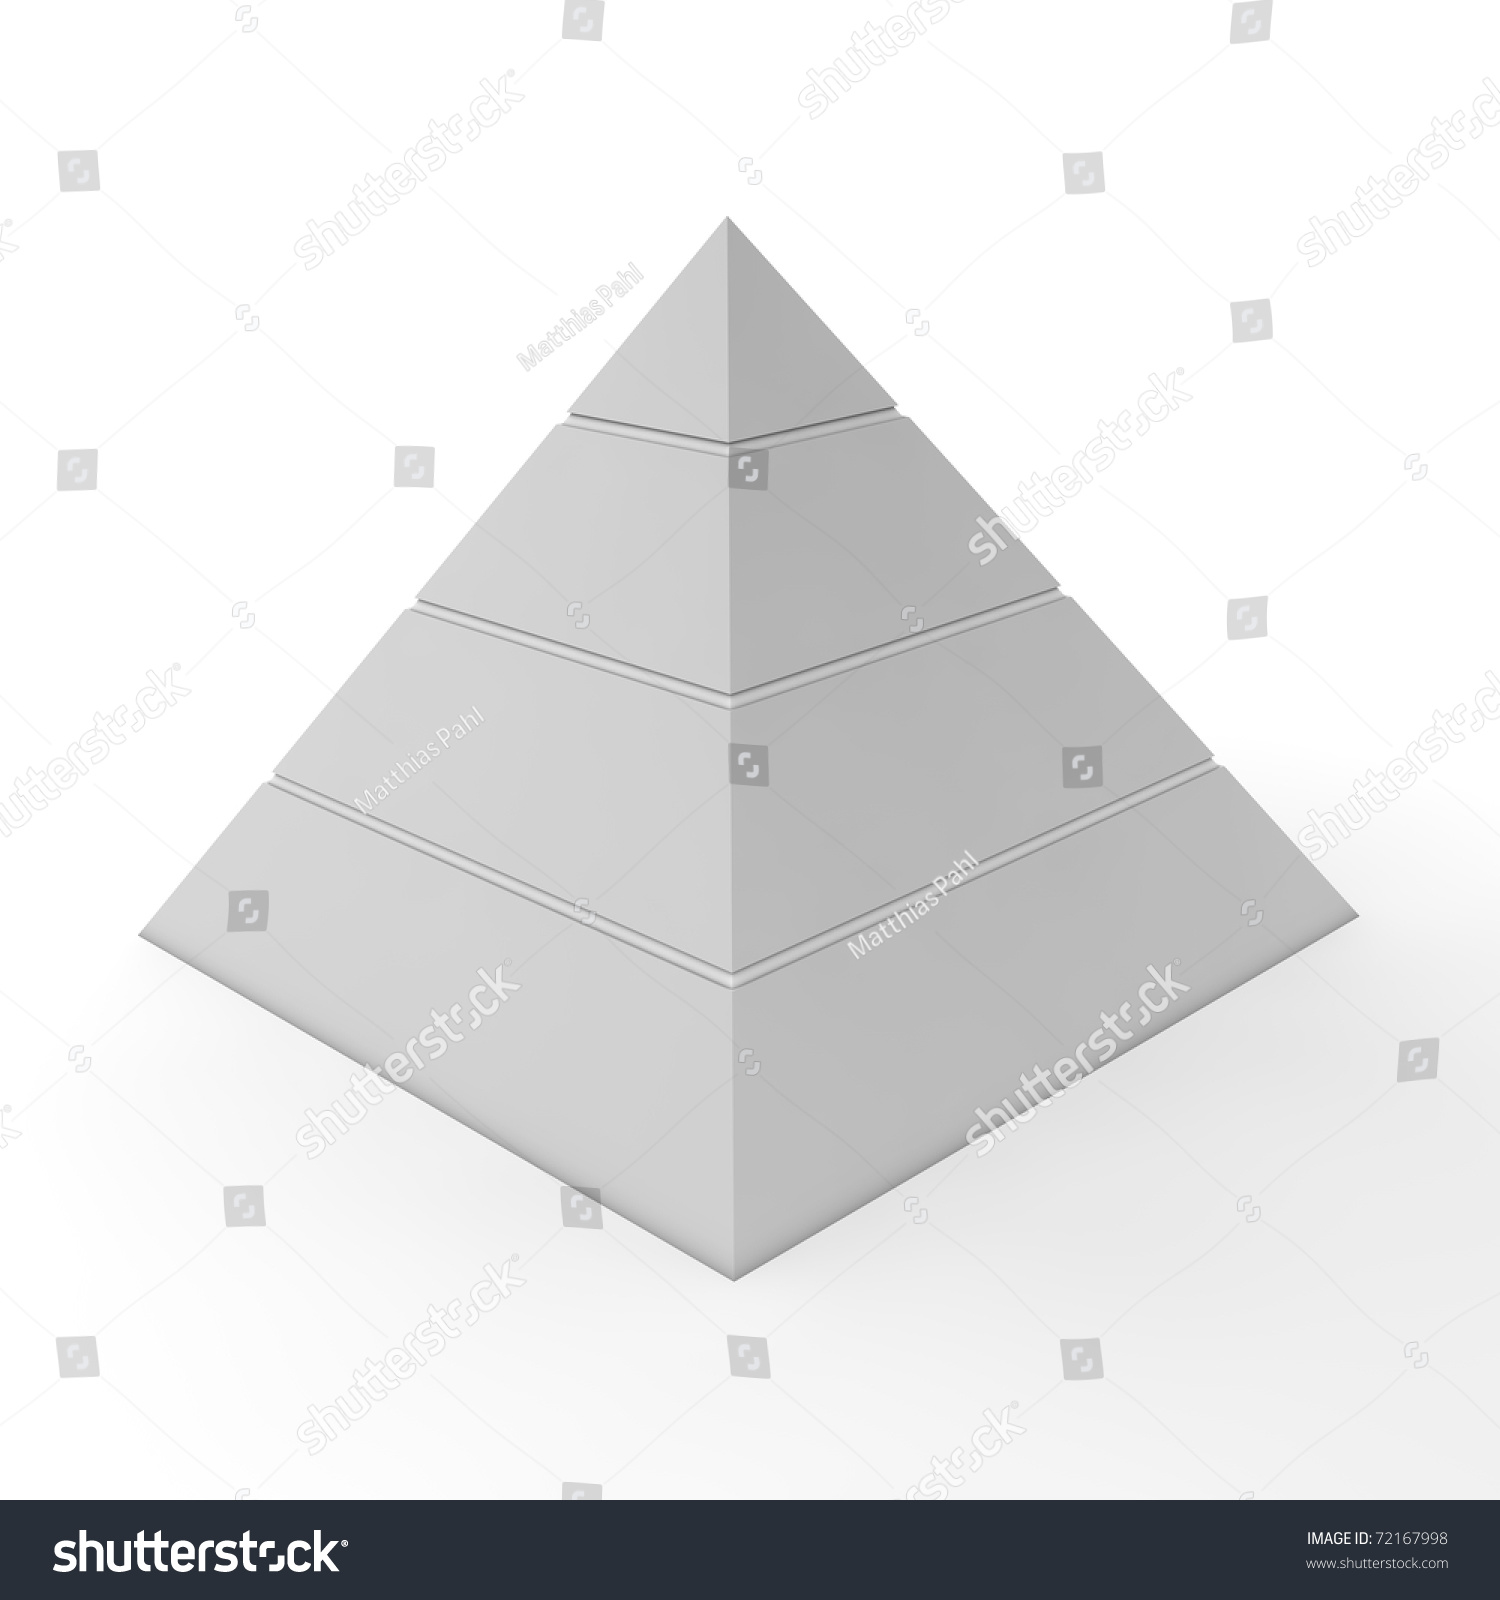 Layered Pyramid Chart Template Four Levels Stock Illustration ...